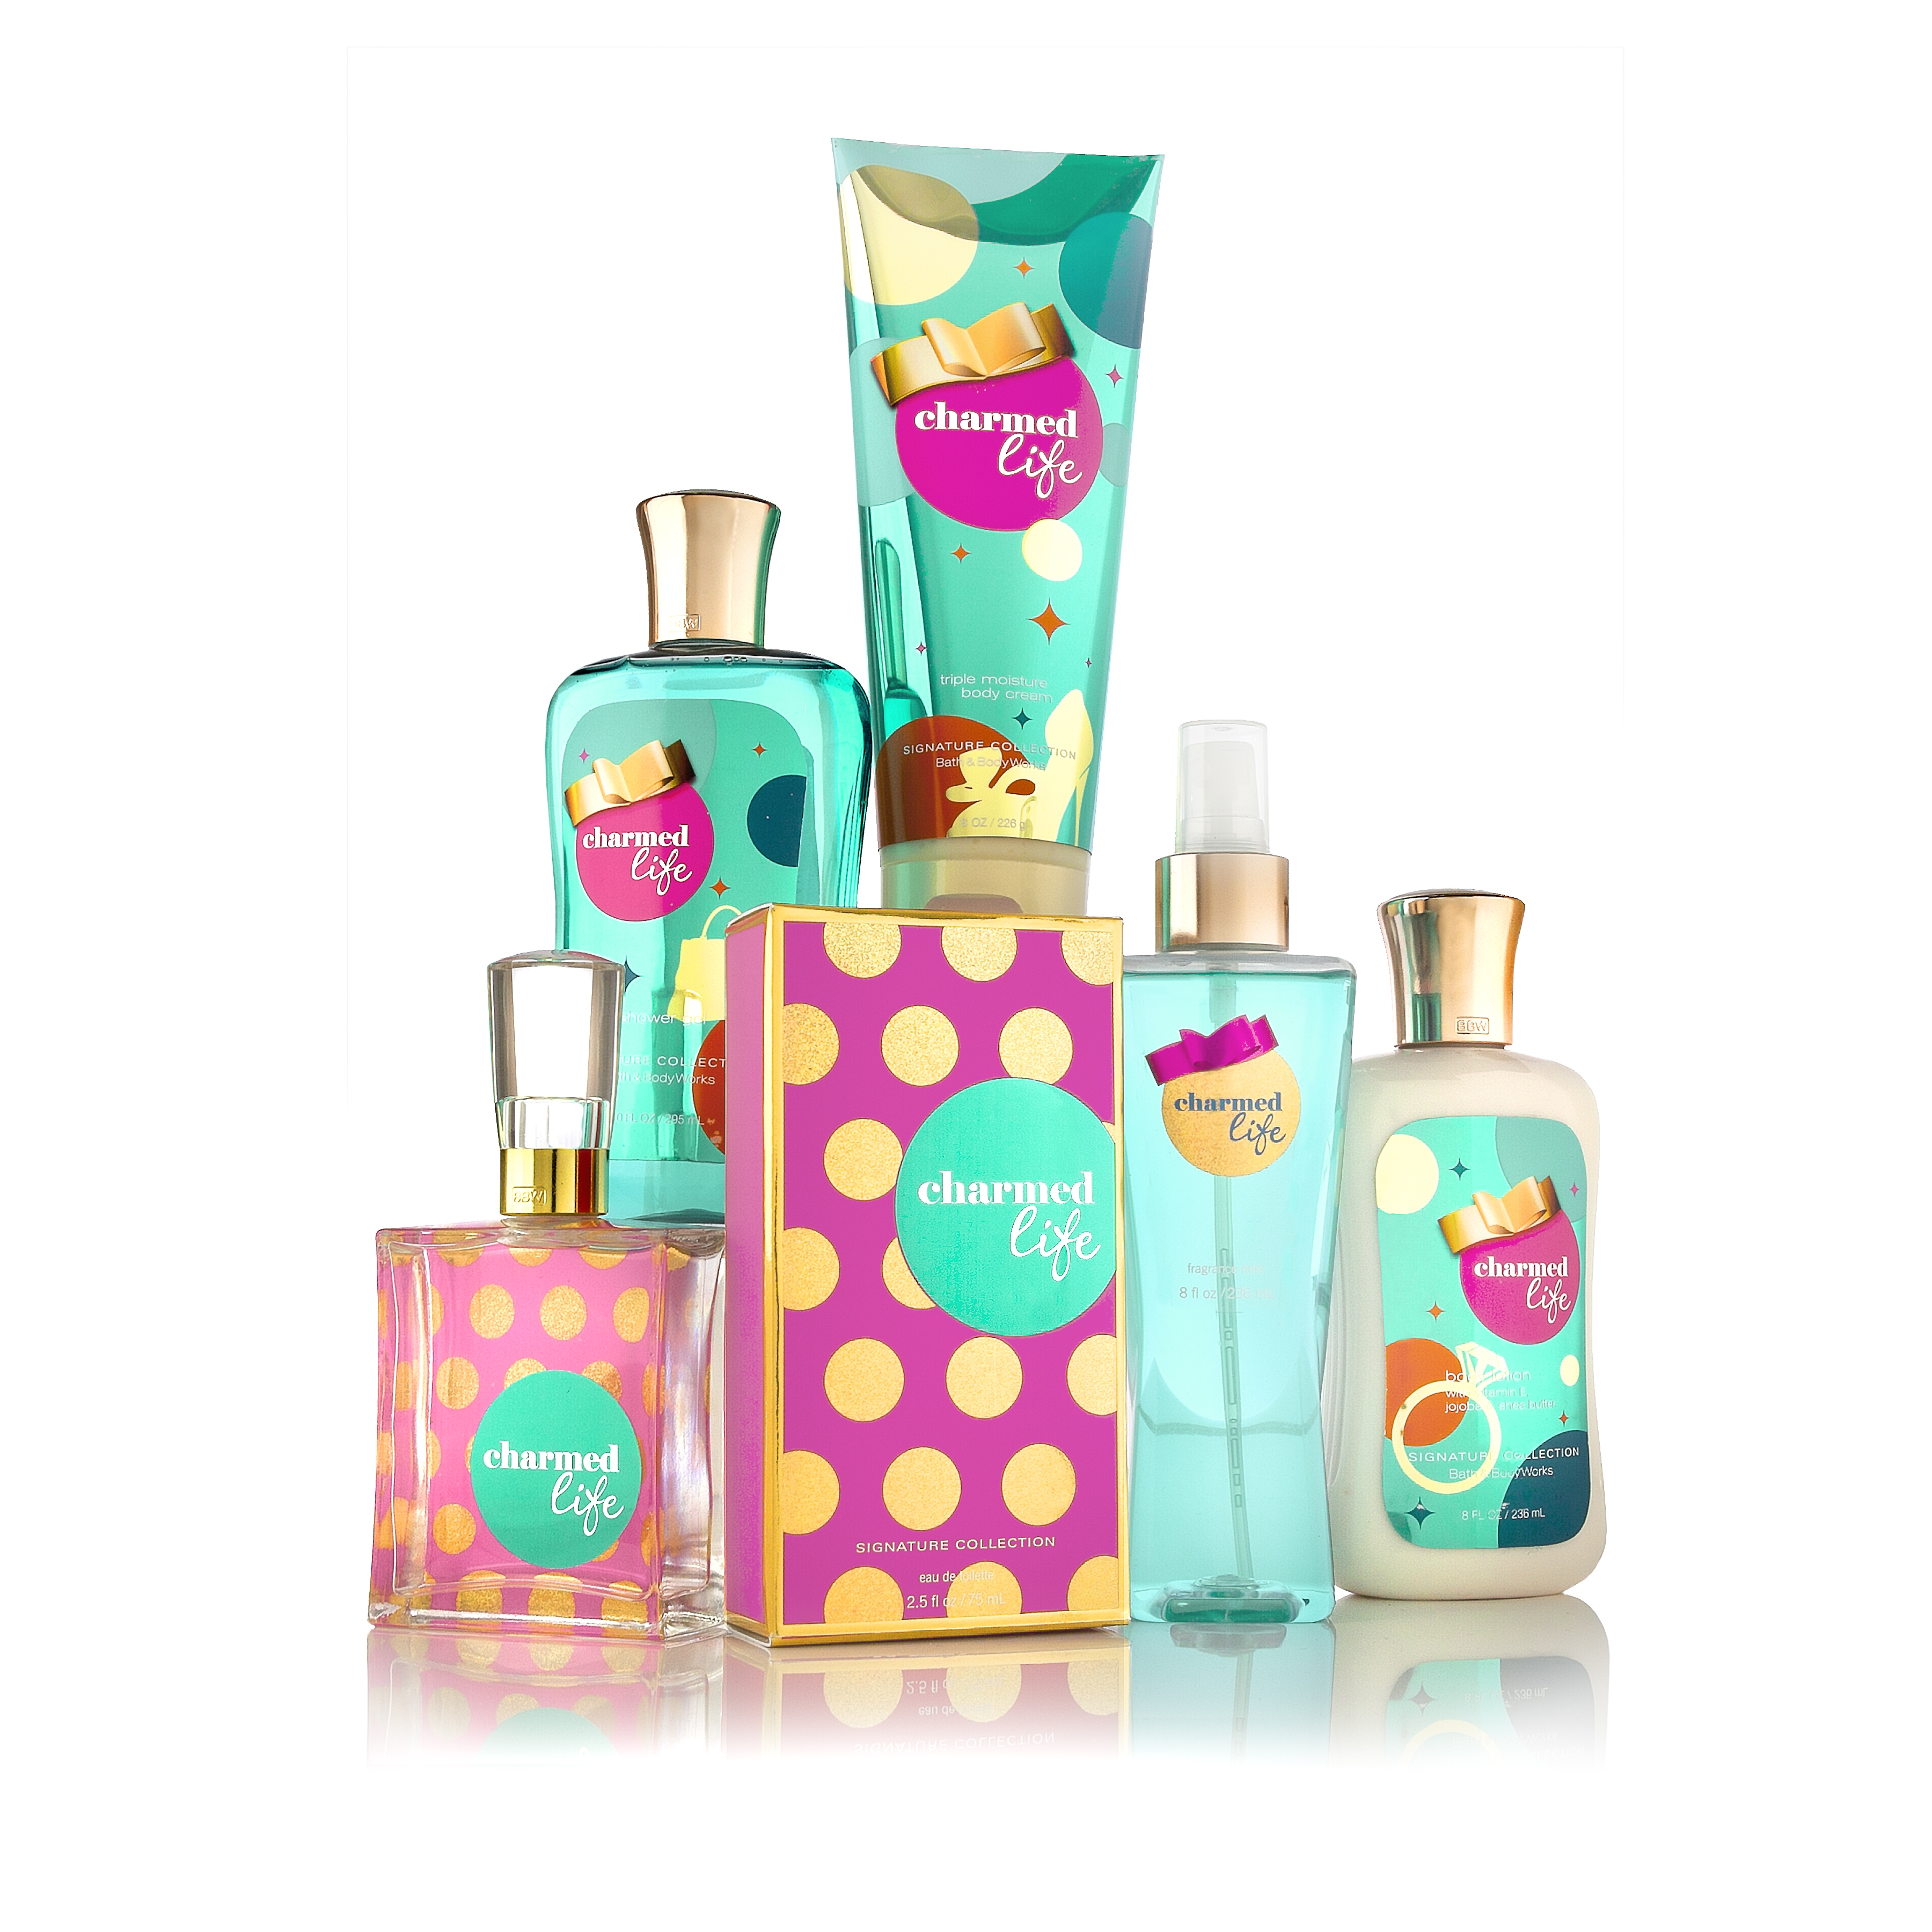 New for Fall 2011 at Bath & Body Works:  Charmed Life